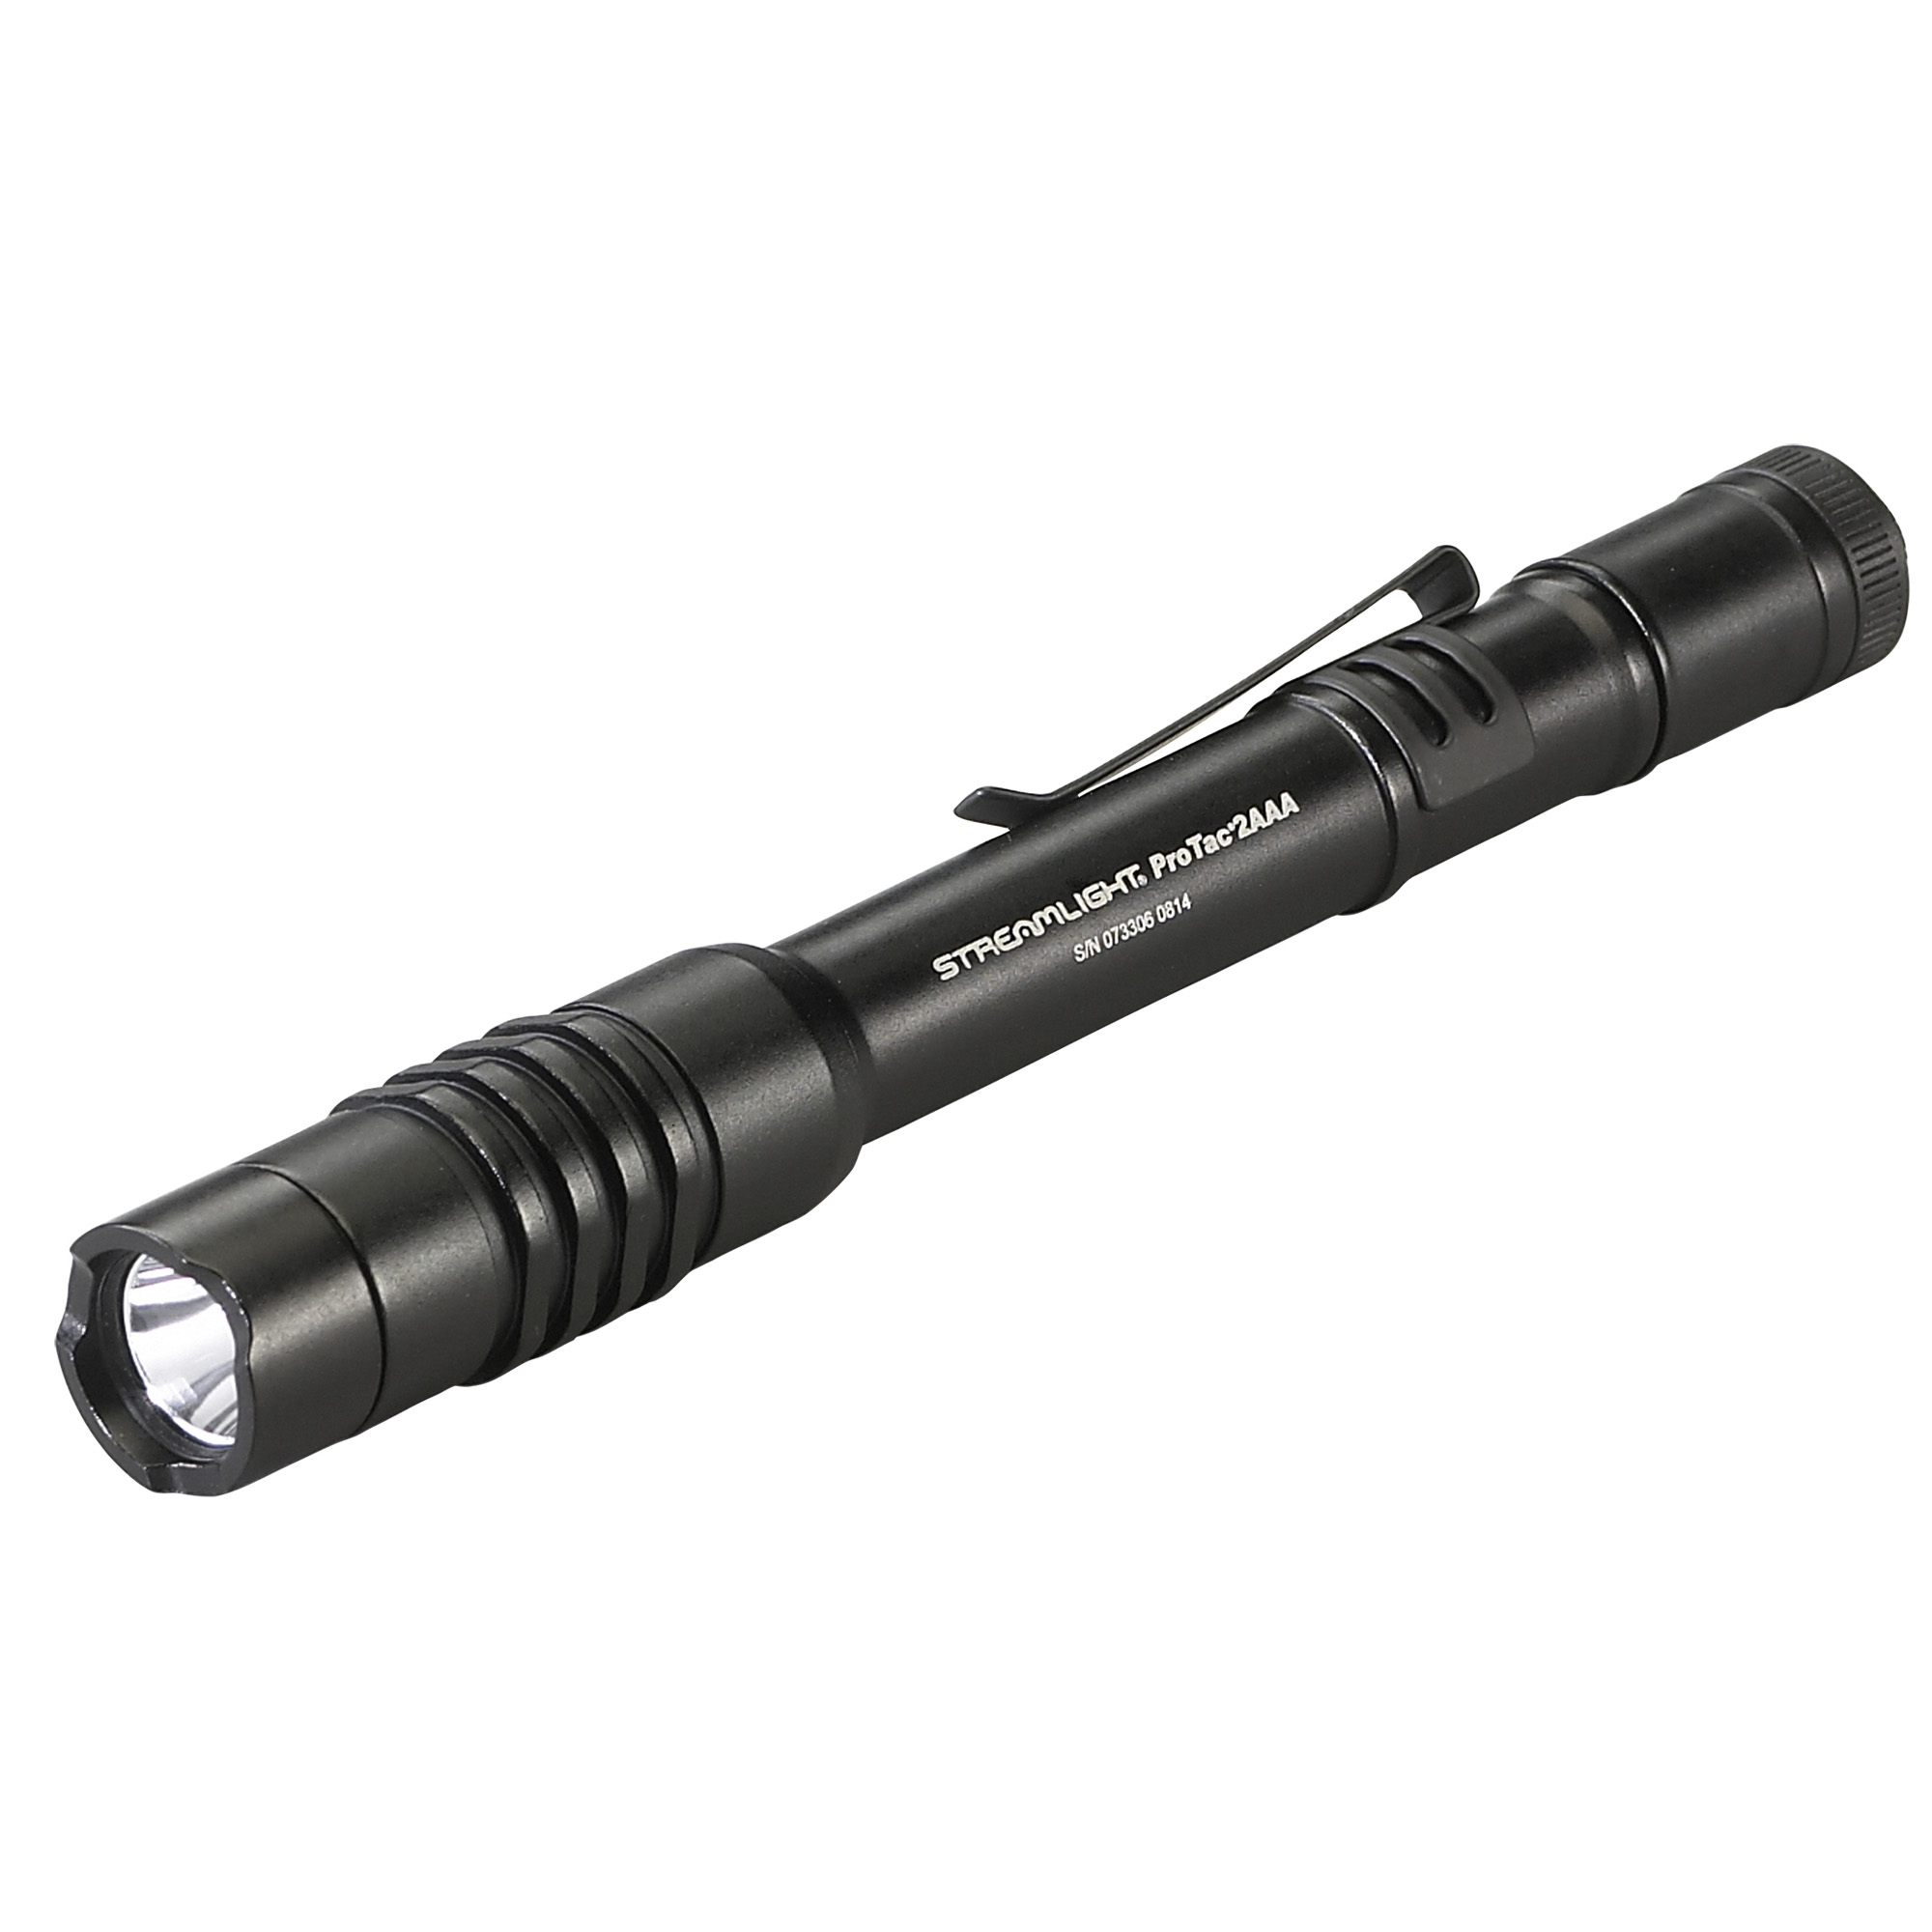 "About the size of a marker"" with two AAA batteries"" this ProTac fits nicely into your pocket and is big on function and performance. Now producing 130 lumens."